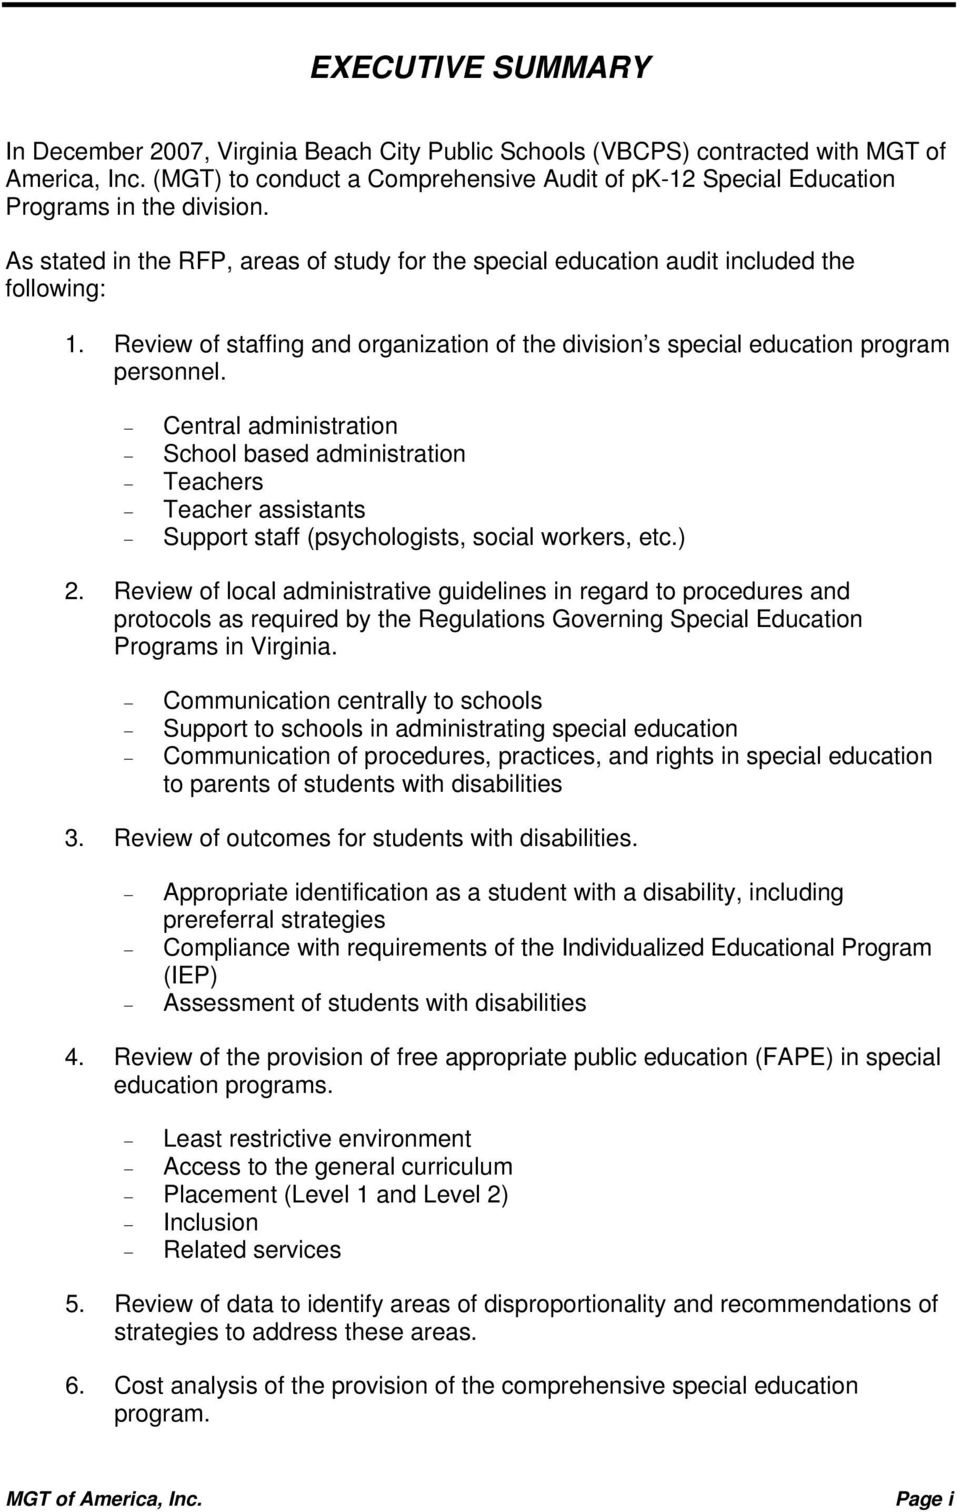 A Comprehensive Audit of PK-12 Special Education Programs